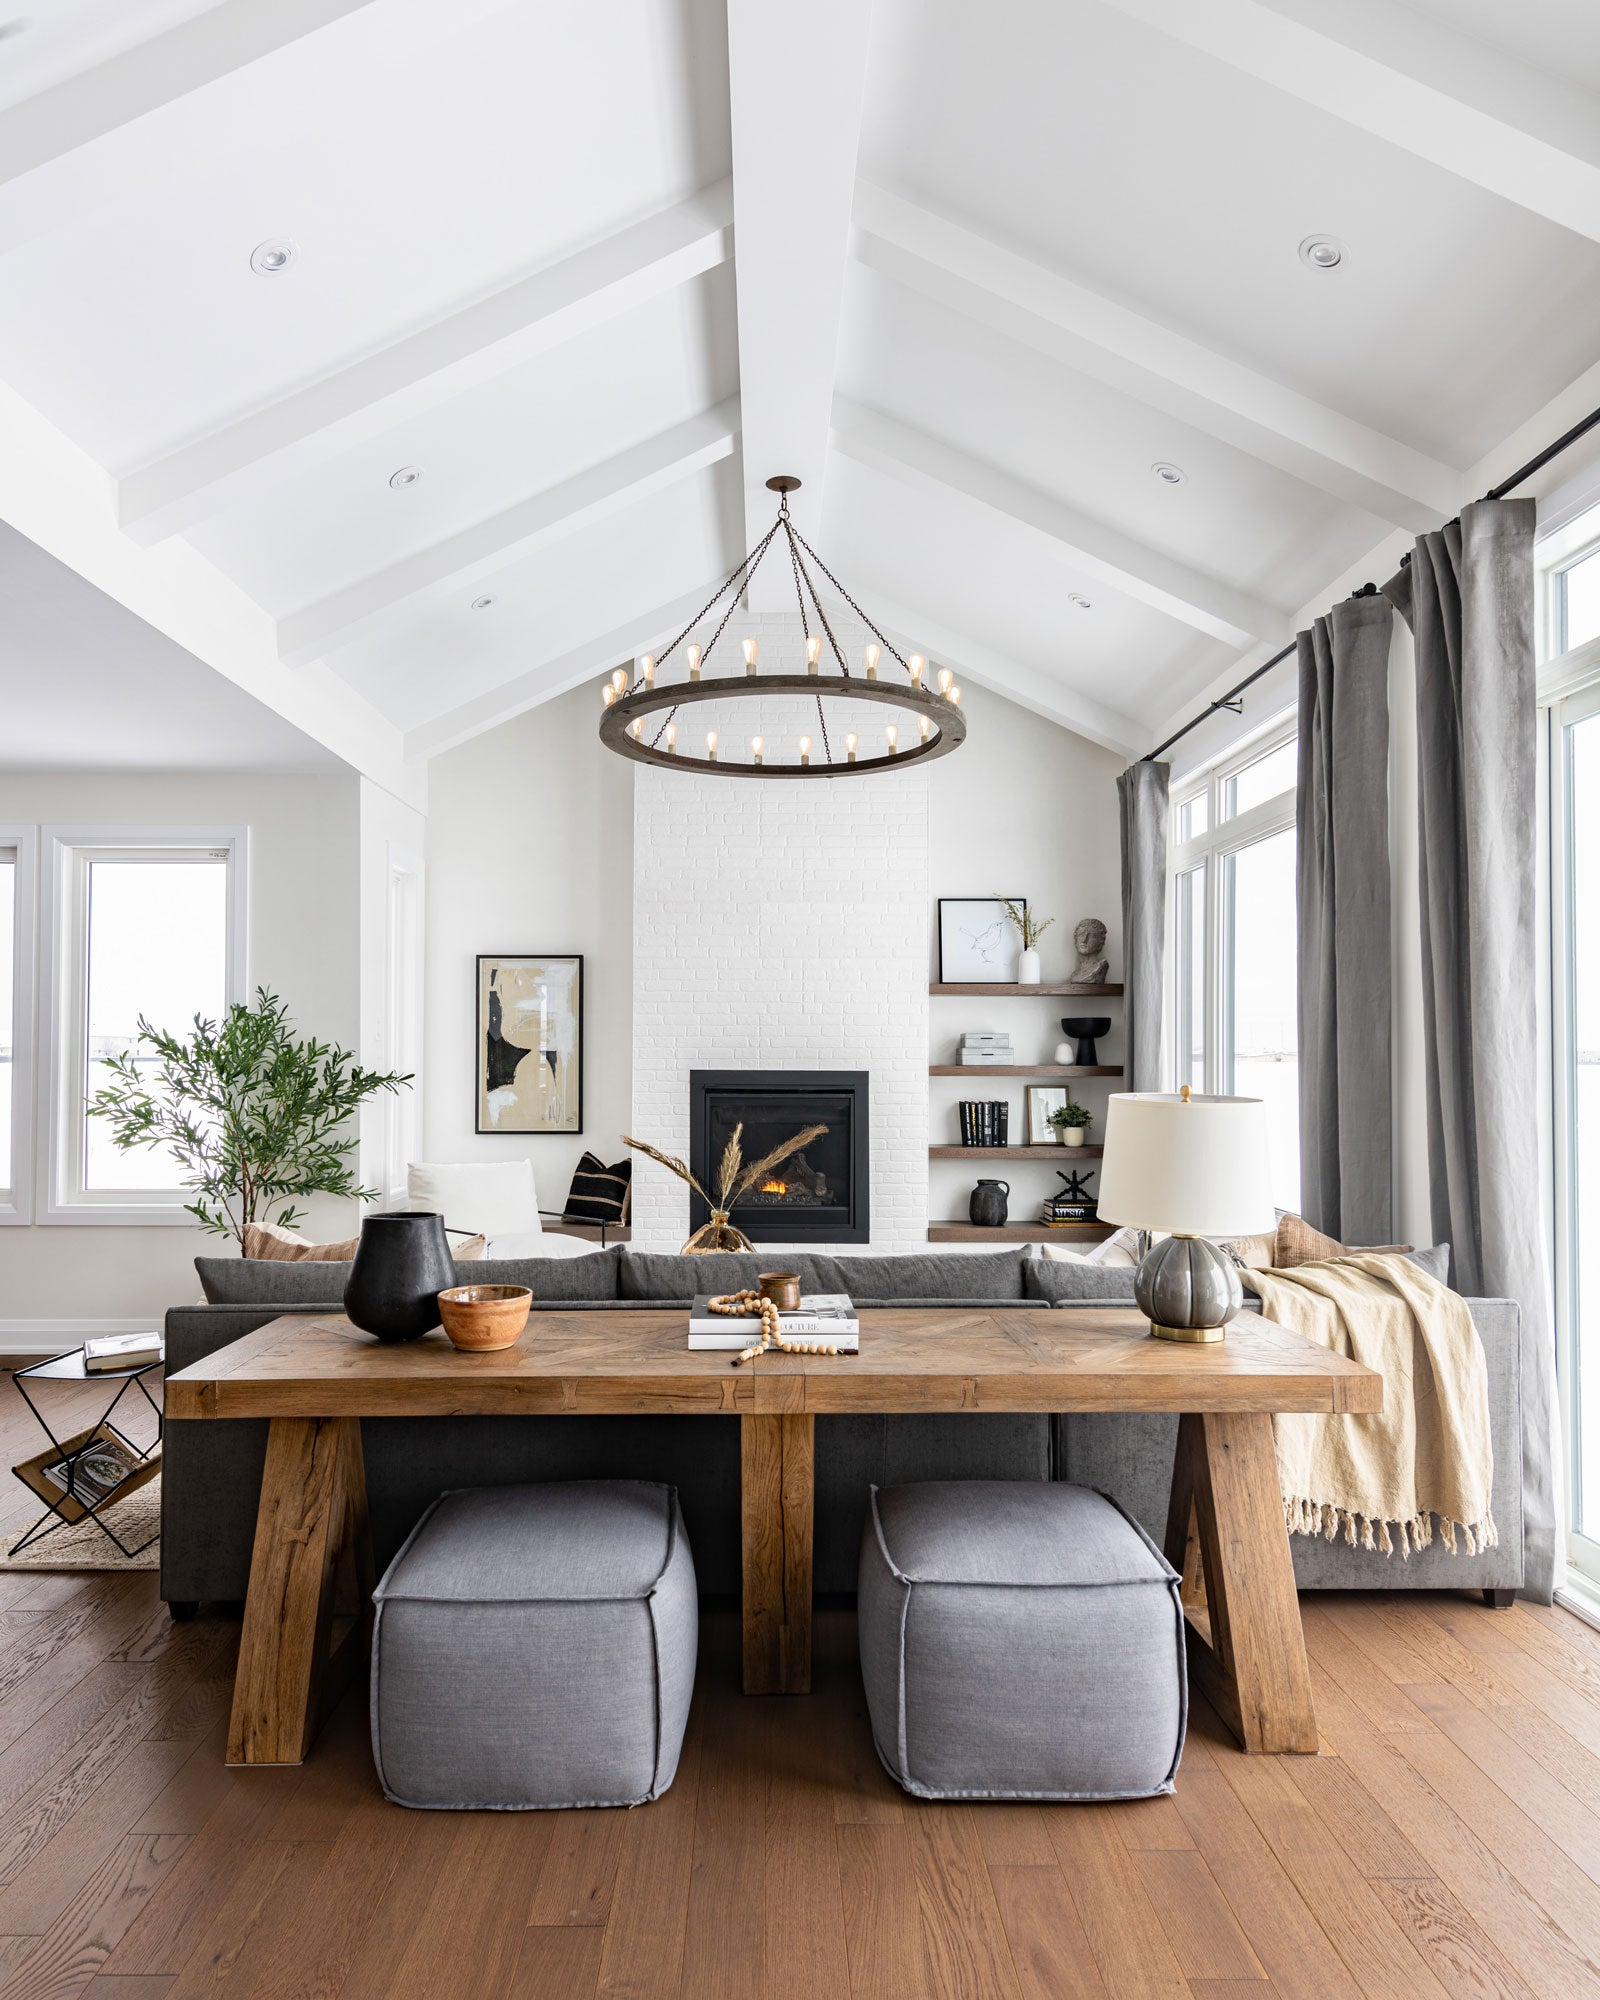 Living room with vaulted ceilings and fireplace